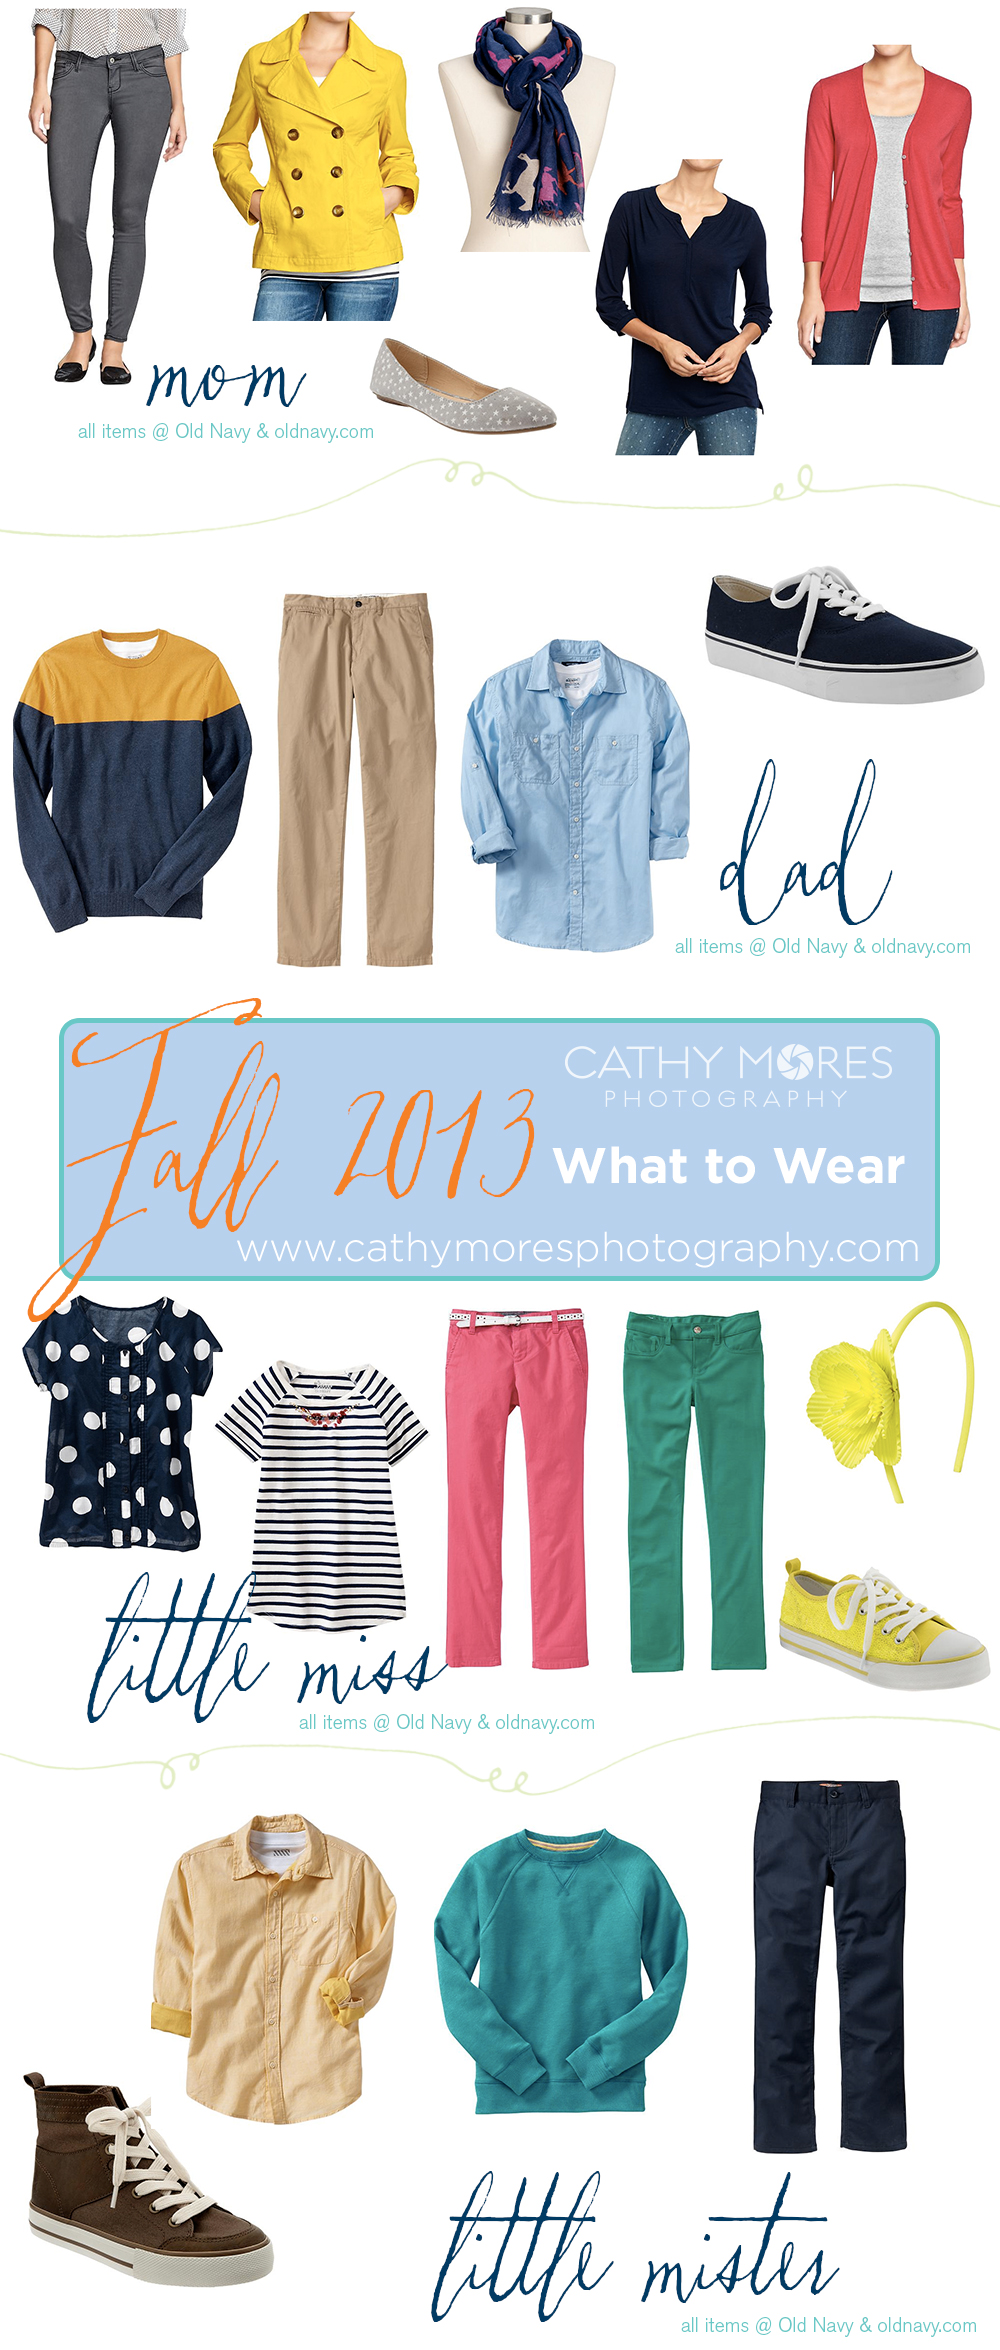 whattowearguide_bright-127x300.jpg